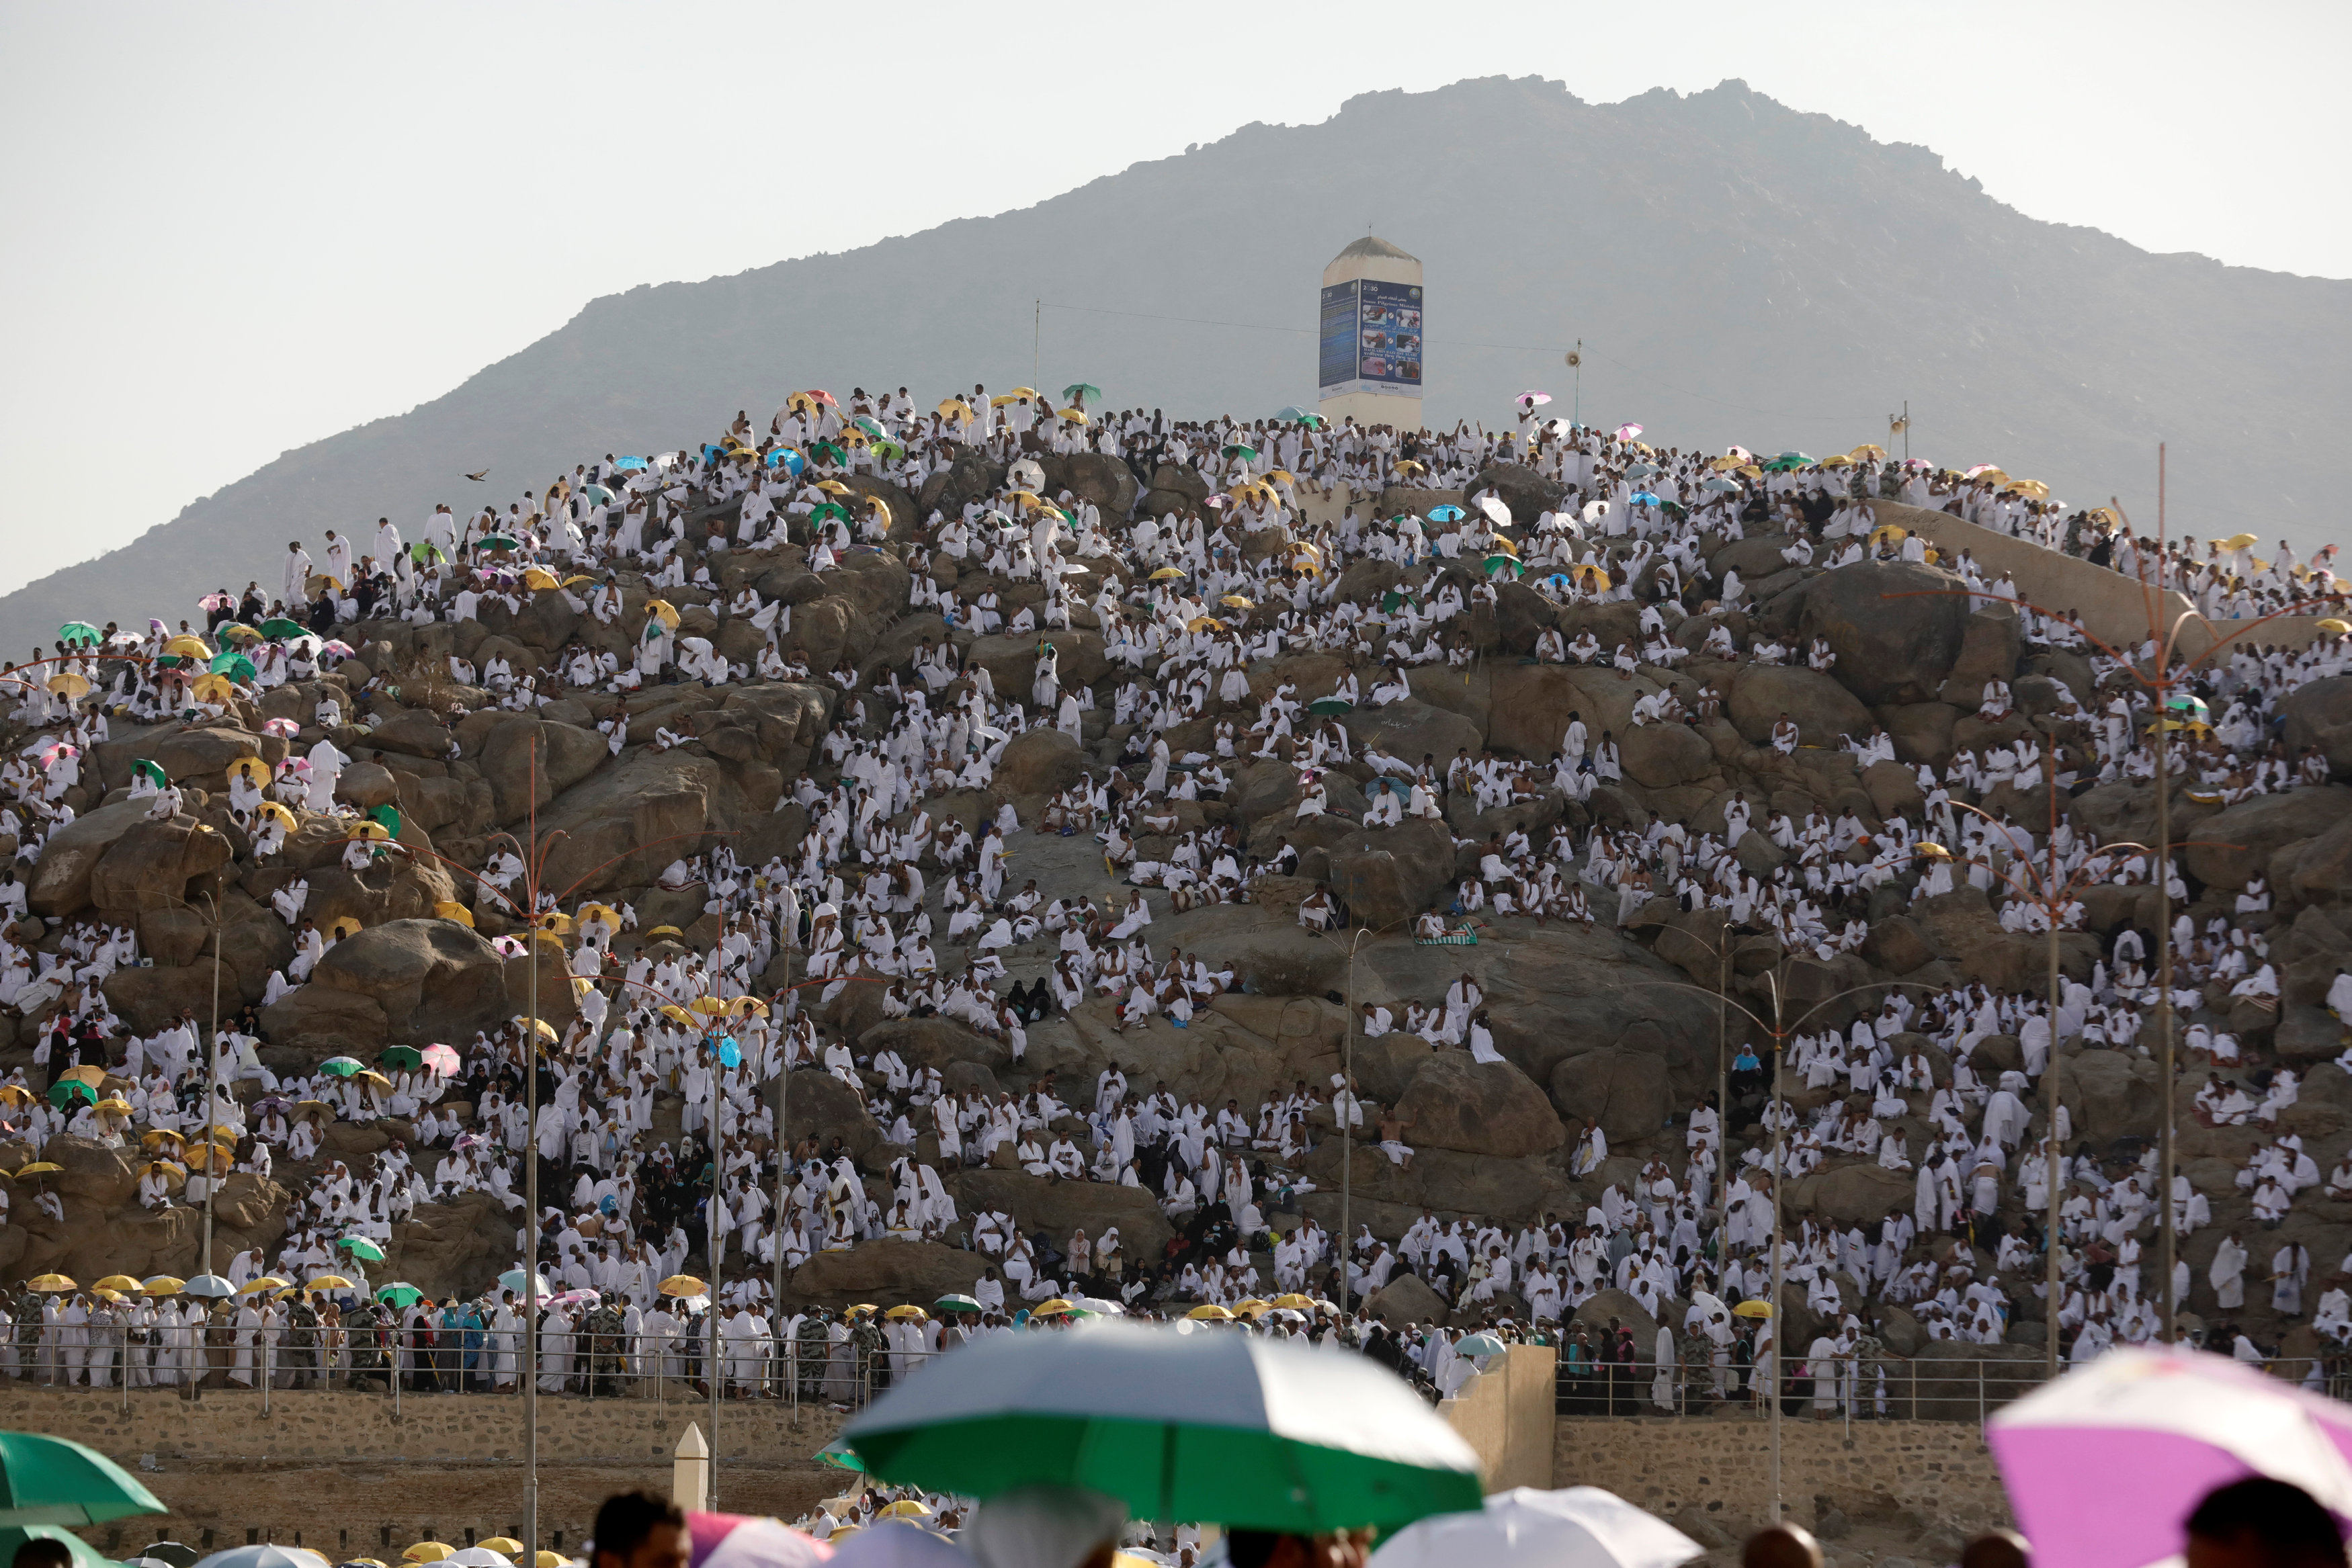 Saudi Arabia: Repentant Muslims gather on Mount Arafat for haj climax